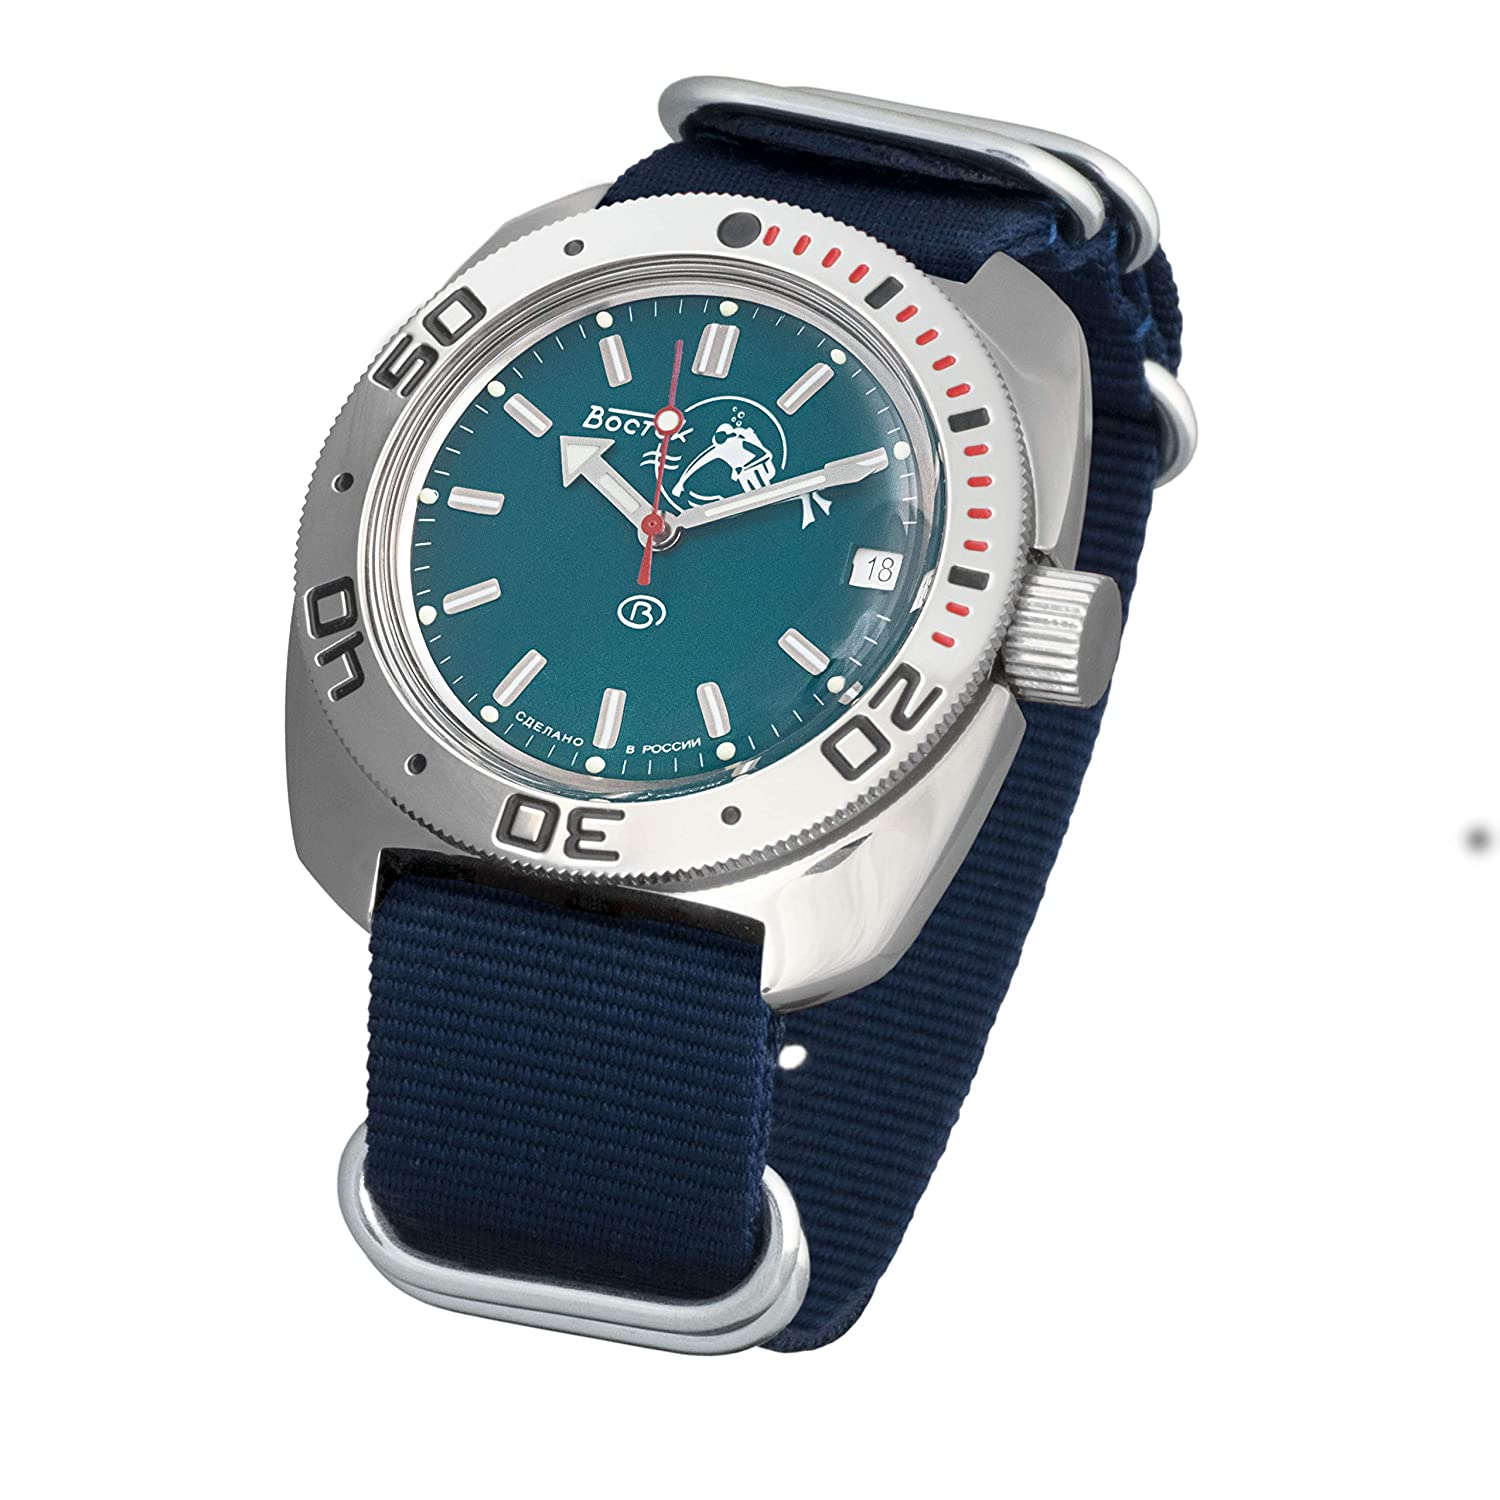 Amazon.com: Vostok Amphibian Scuba Dude Automatic Mens Wristwatch Self-Winding Military Diver Amphibia Ministry Case Wrist Watch #710059 (Blue): Watches